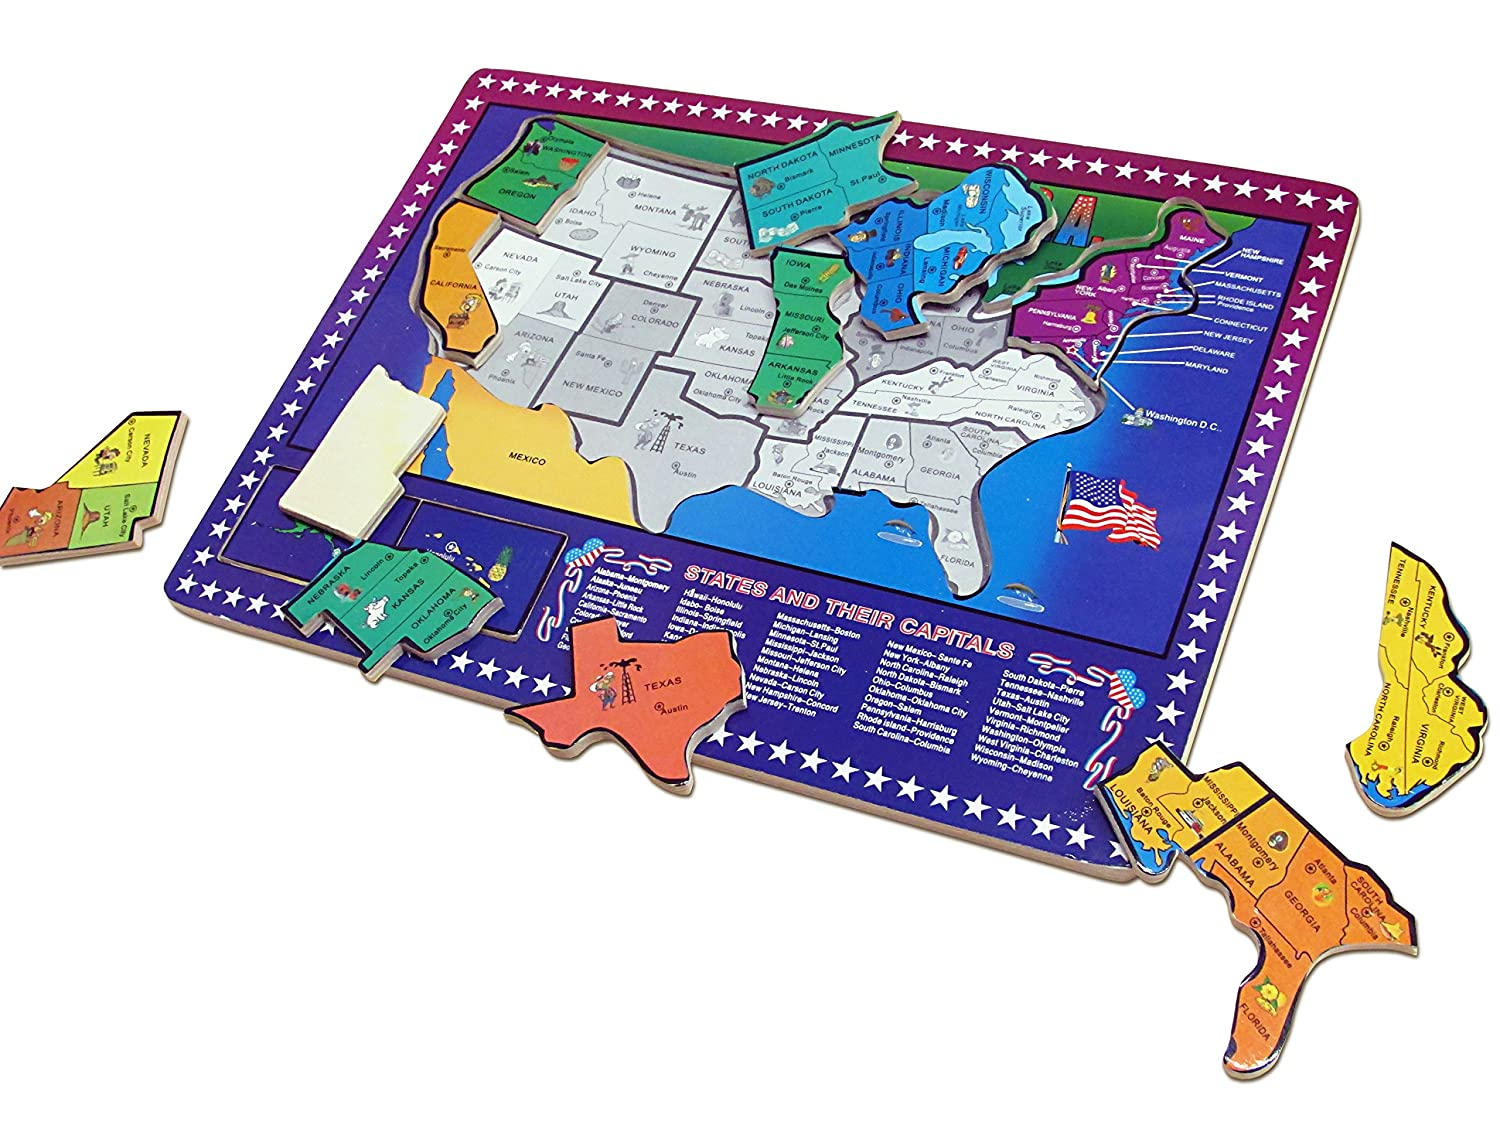 Buy Dazzling Toys Educational Wooden United States Map ... on 50 states magnets, 50 states stickers, 50 states colors, 50 states homework, 50 states vocabulary, 50 states clip art, 50 states coloring, 50 states and capitals puzzle, 50 states math, 50 states printable,